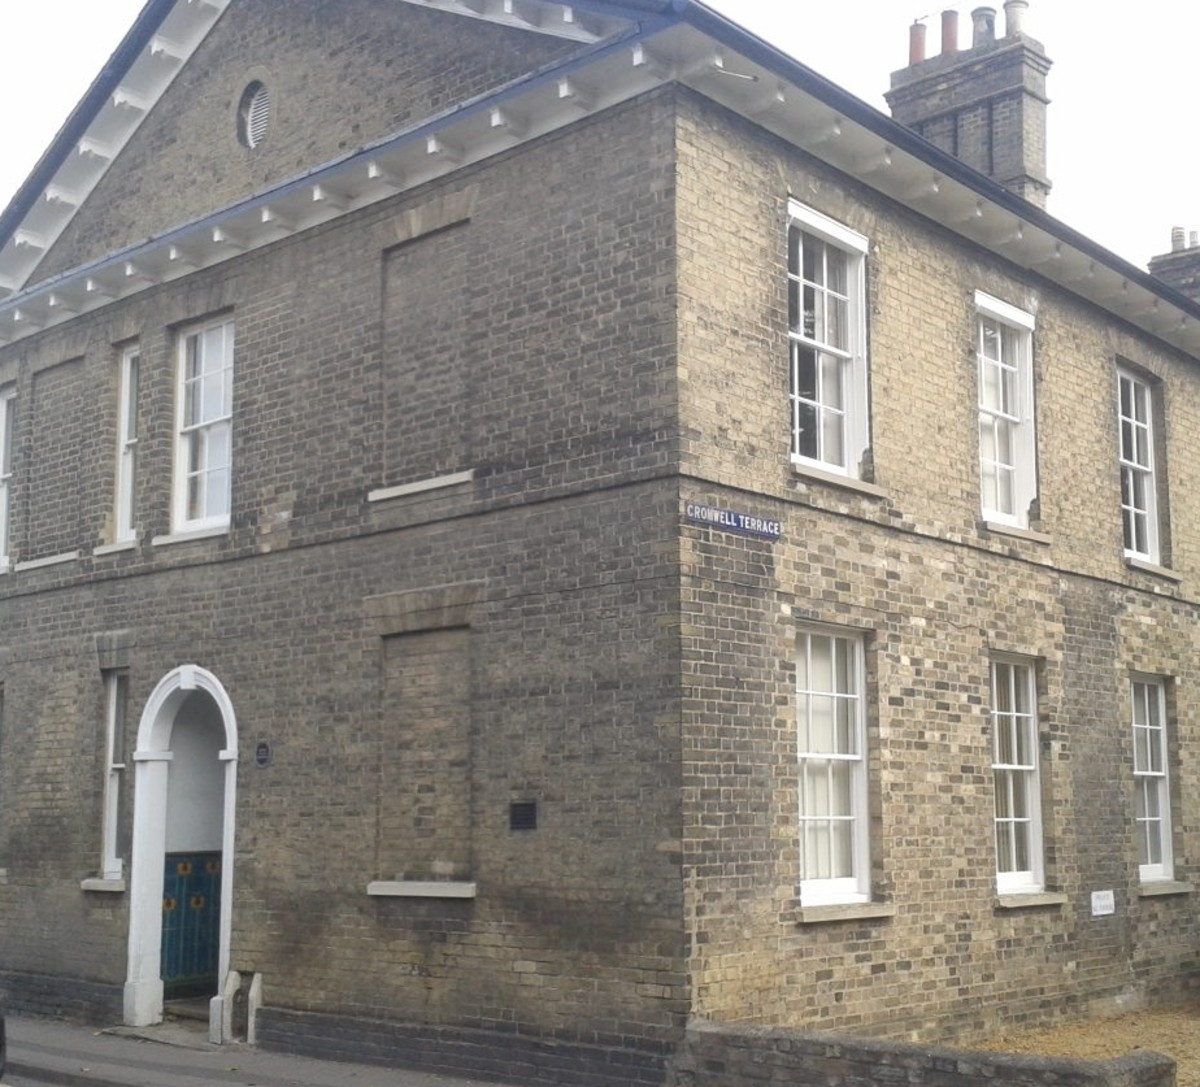 Cromwell House,St Ives.Cambridgeshire.  It Is believed that Oliver was born here, this was his uncle's house. The house is still in use today.